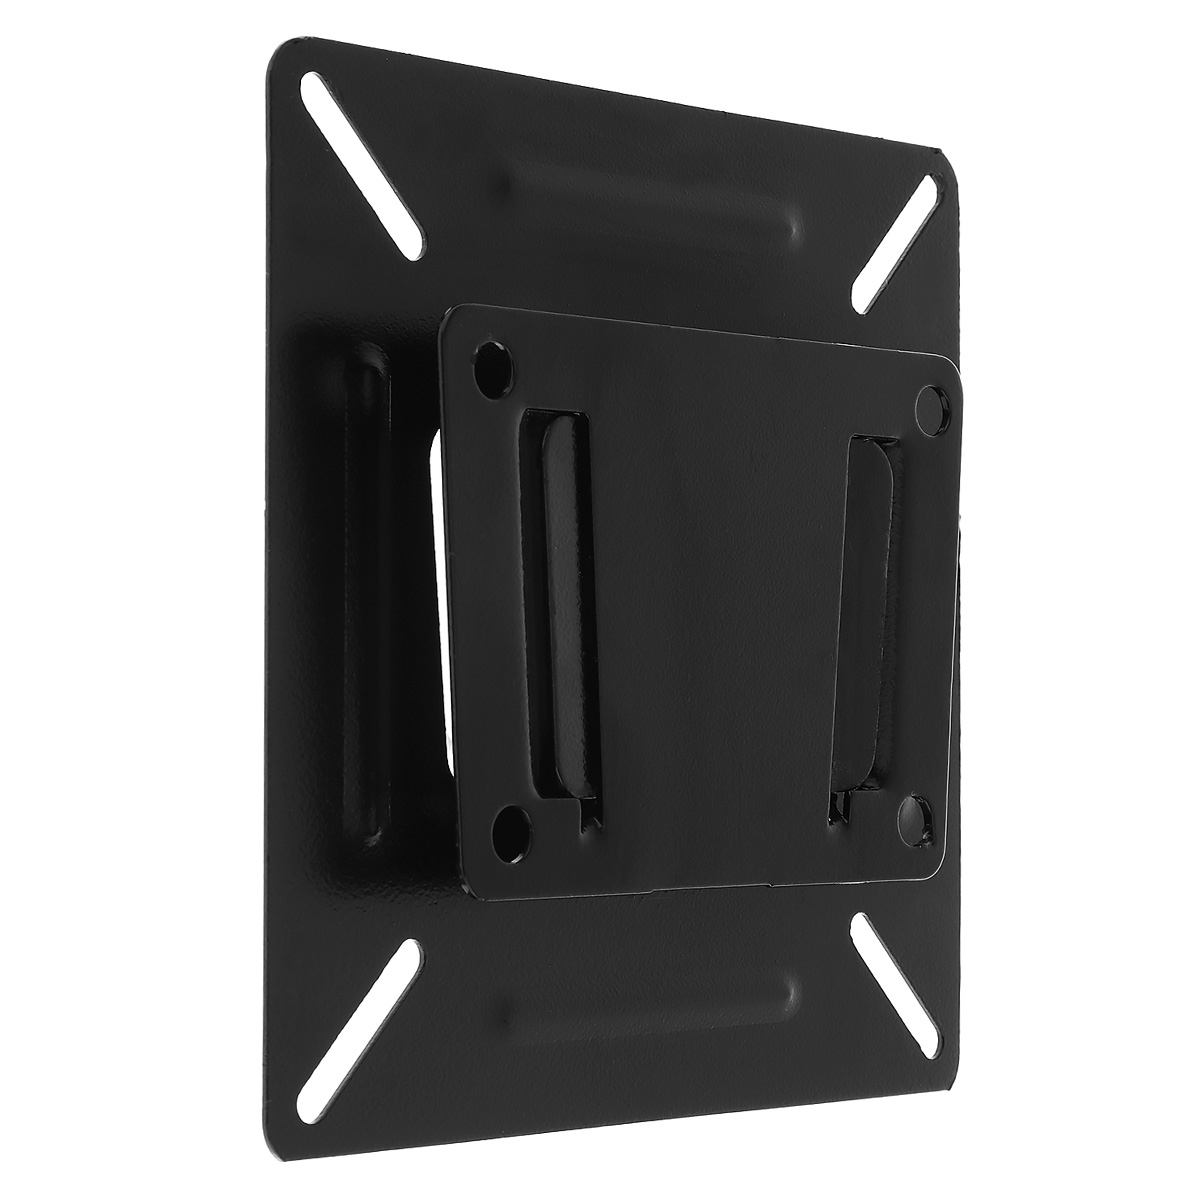 Universal Black 15KG SPHC with Coating Finished TV Wall Mount Bracket for 14-24 Inch LCD LED Monitor Flat Panel TV Frame